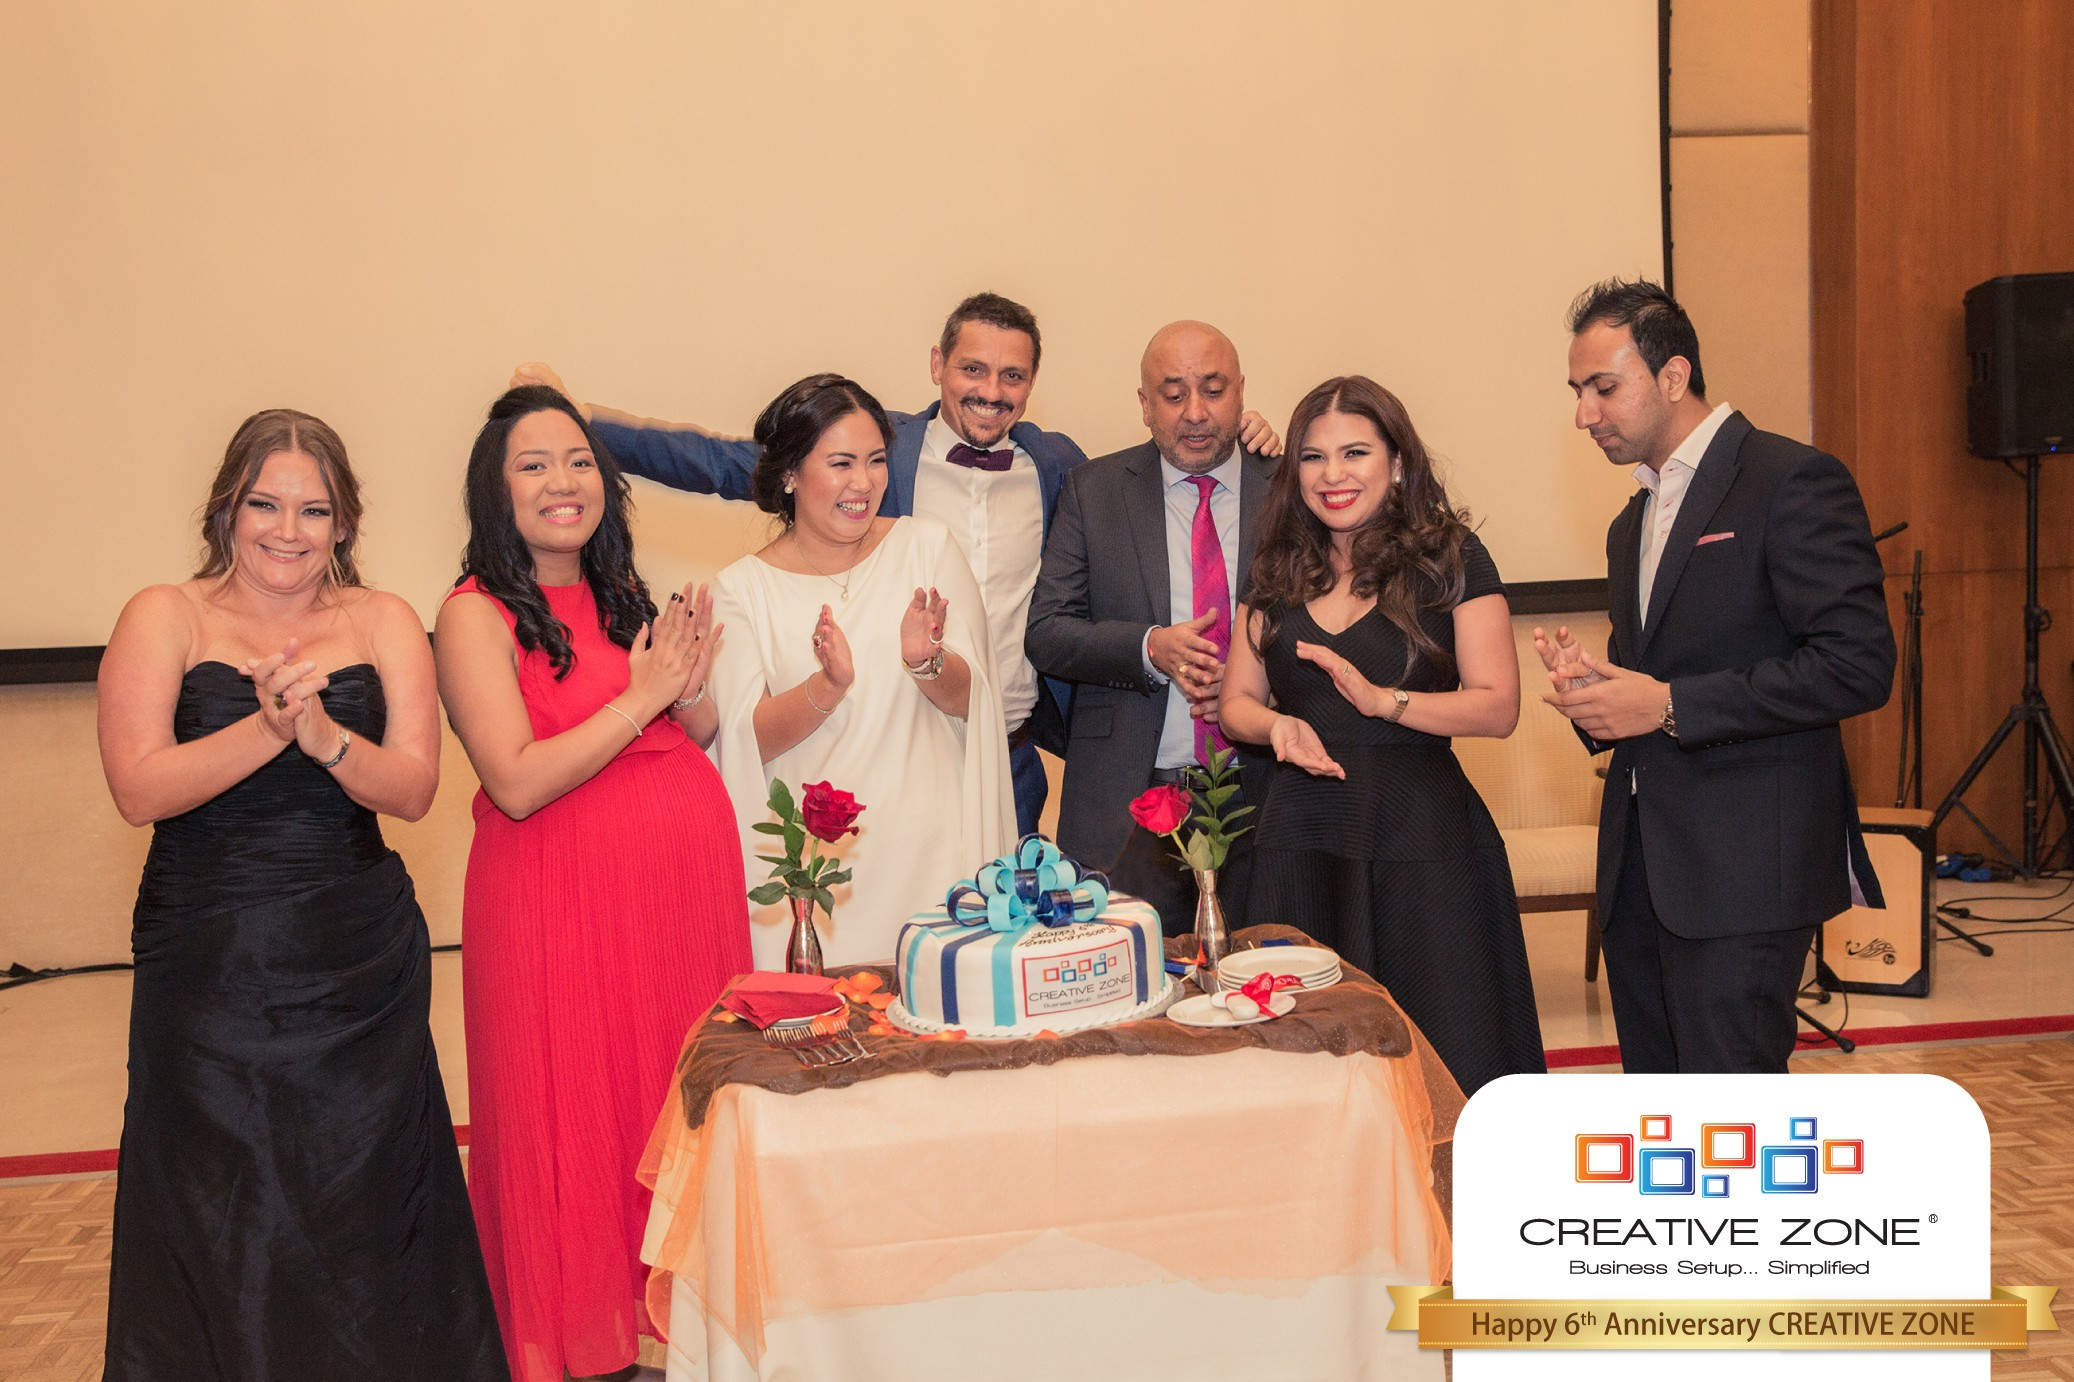 CREATIVE ZONE celebrates another milestone